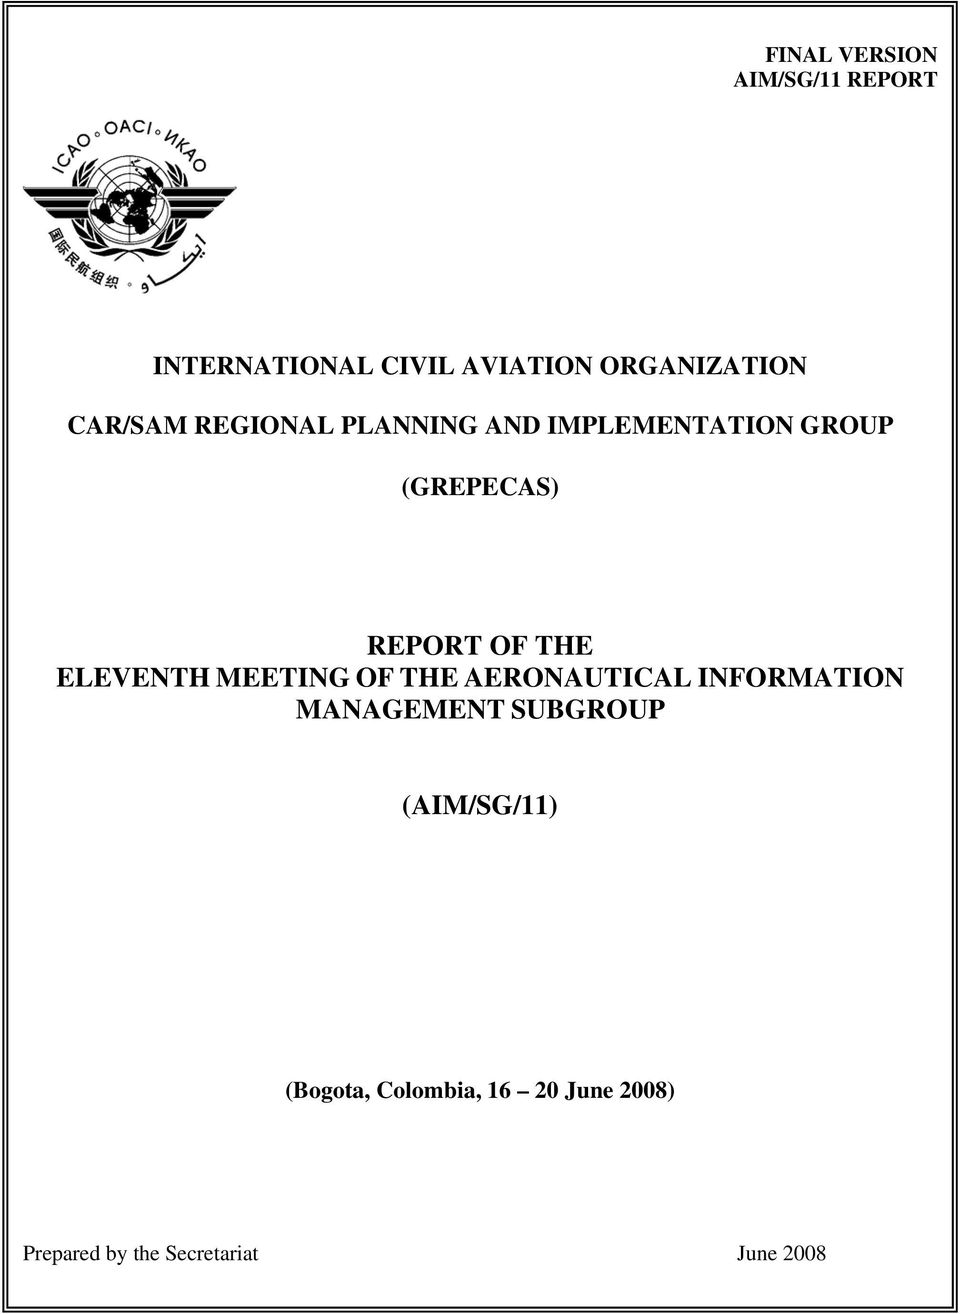 IMPLEMENTATION MANAGEMENT GROUP SUBGROUP (GREPECAS) (AIM/SG/11) REPORT OF THE EIGHTH MEETING OF THE AERONAUTICAL INFORMATION SERVICES AND